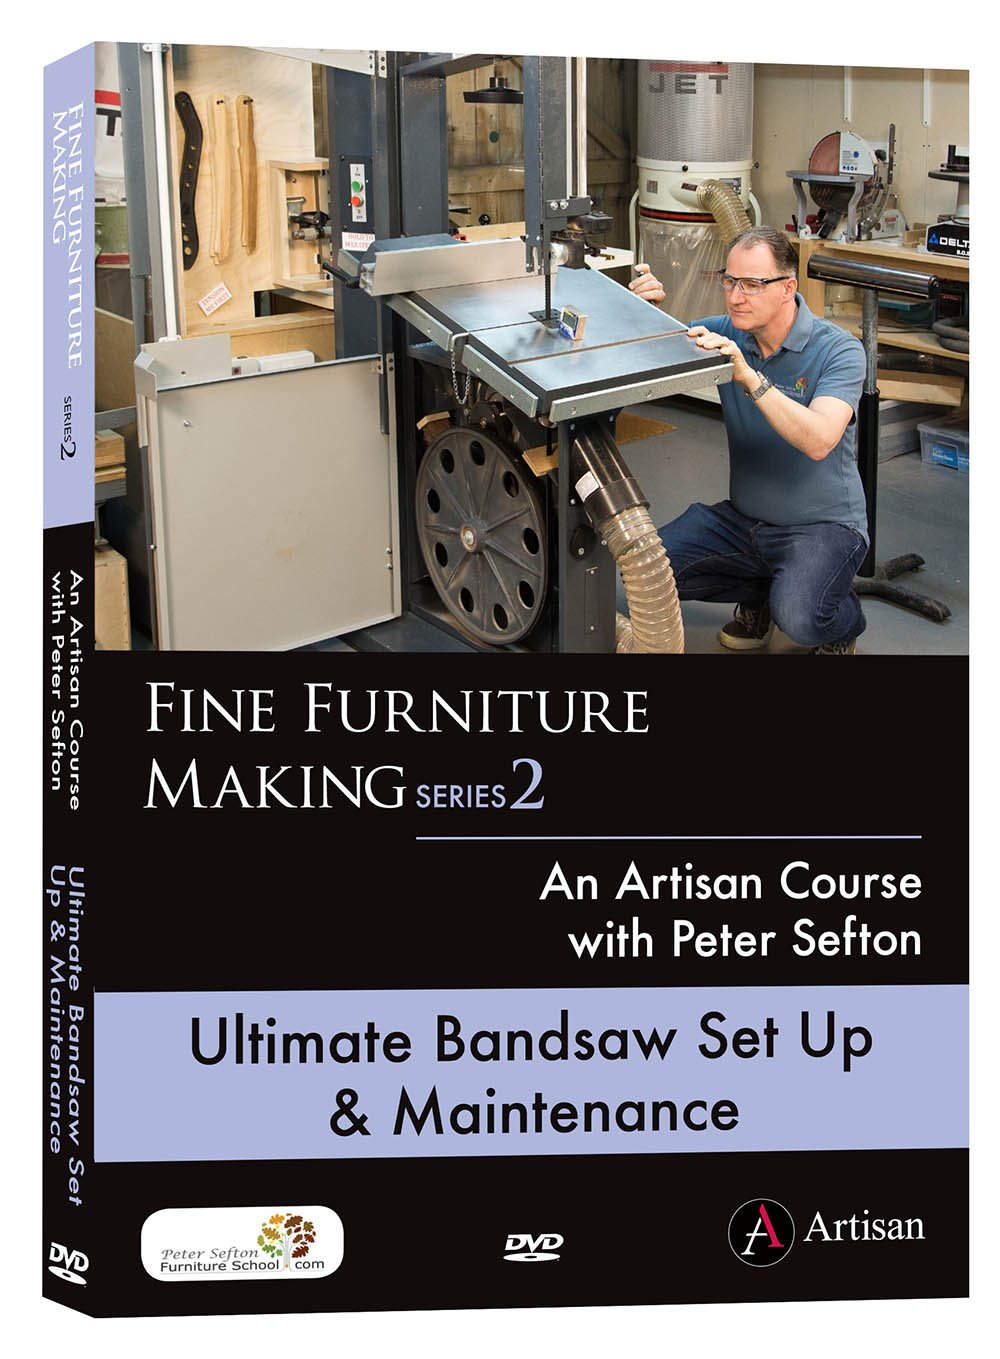 Ultimate Bandsaw Set Up & Maintenance - Peter Sefton (DVD)